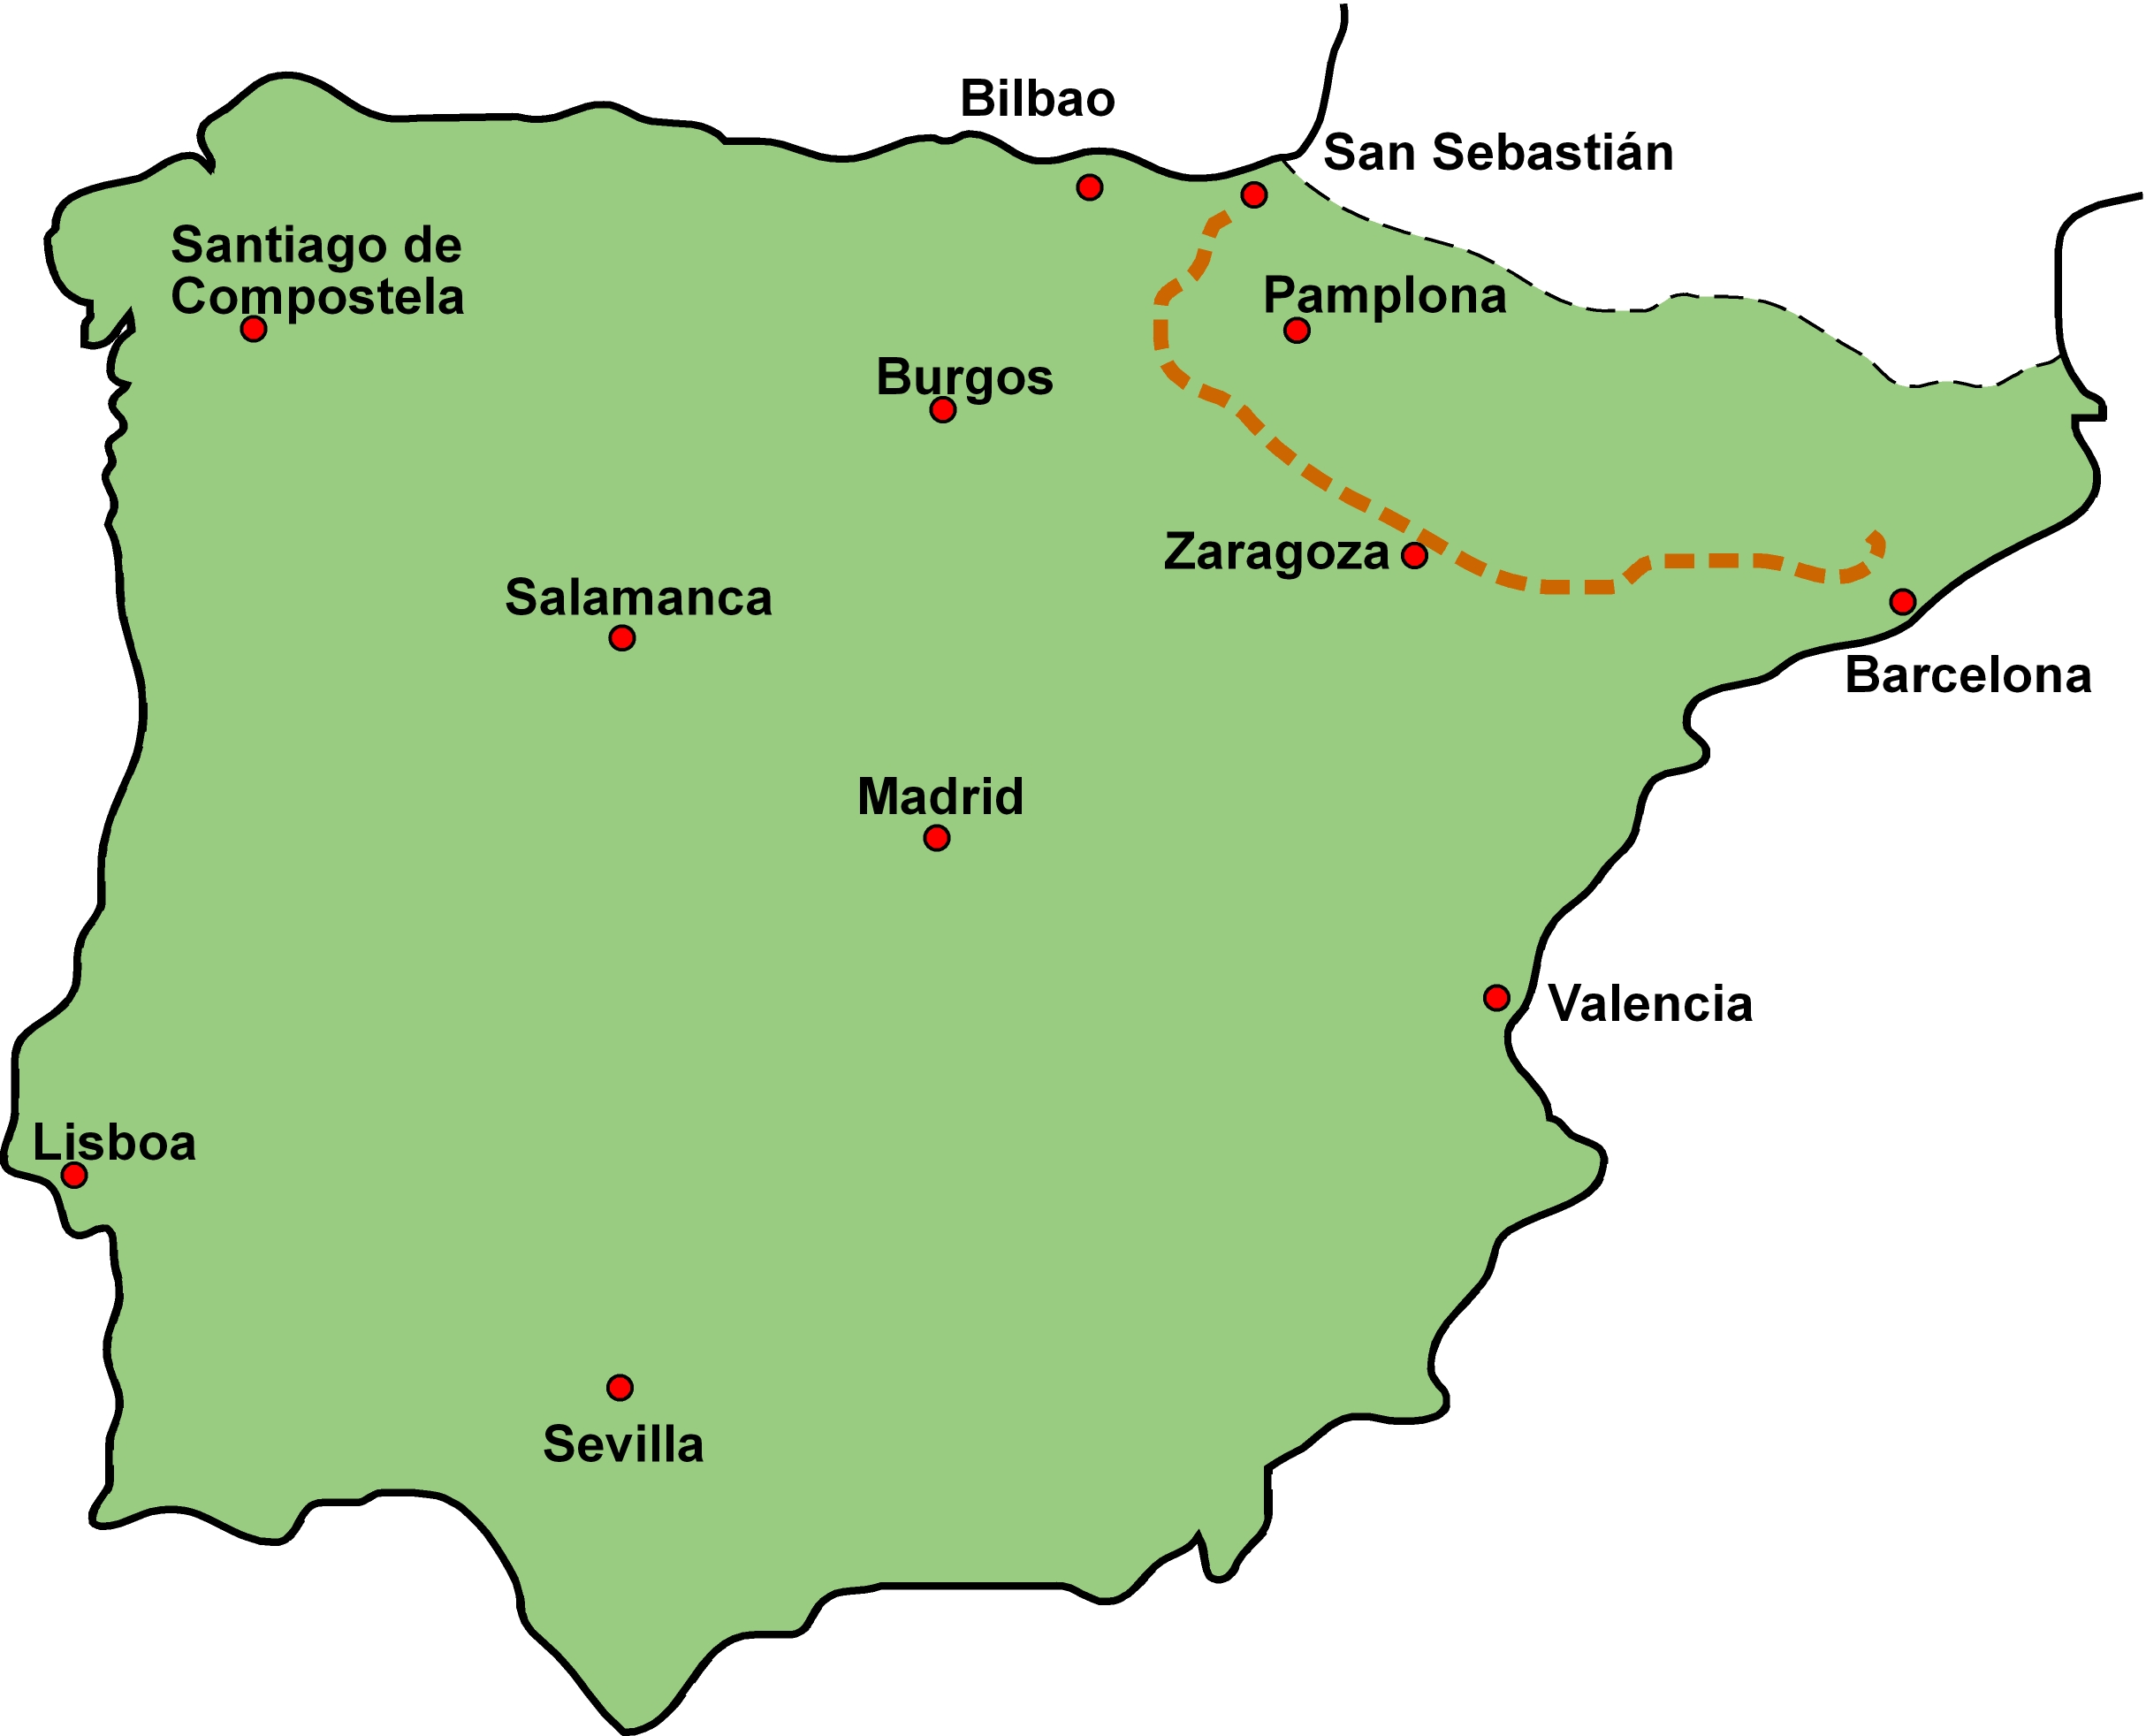 Loyola Spain Map.Itinerary And Maps Walking With Inigo The Ignatian Camino